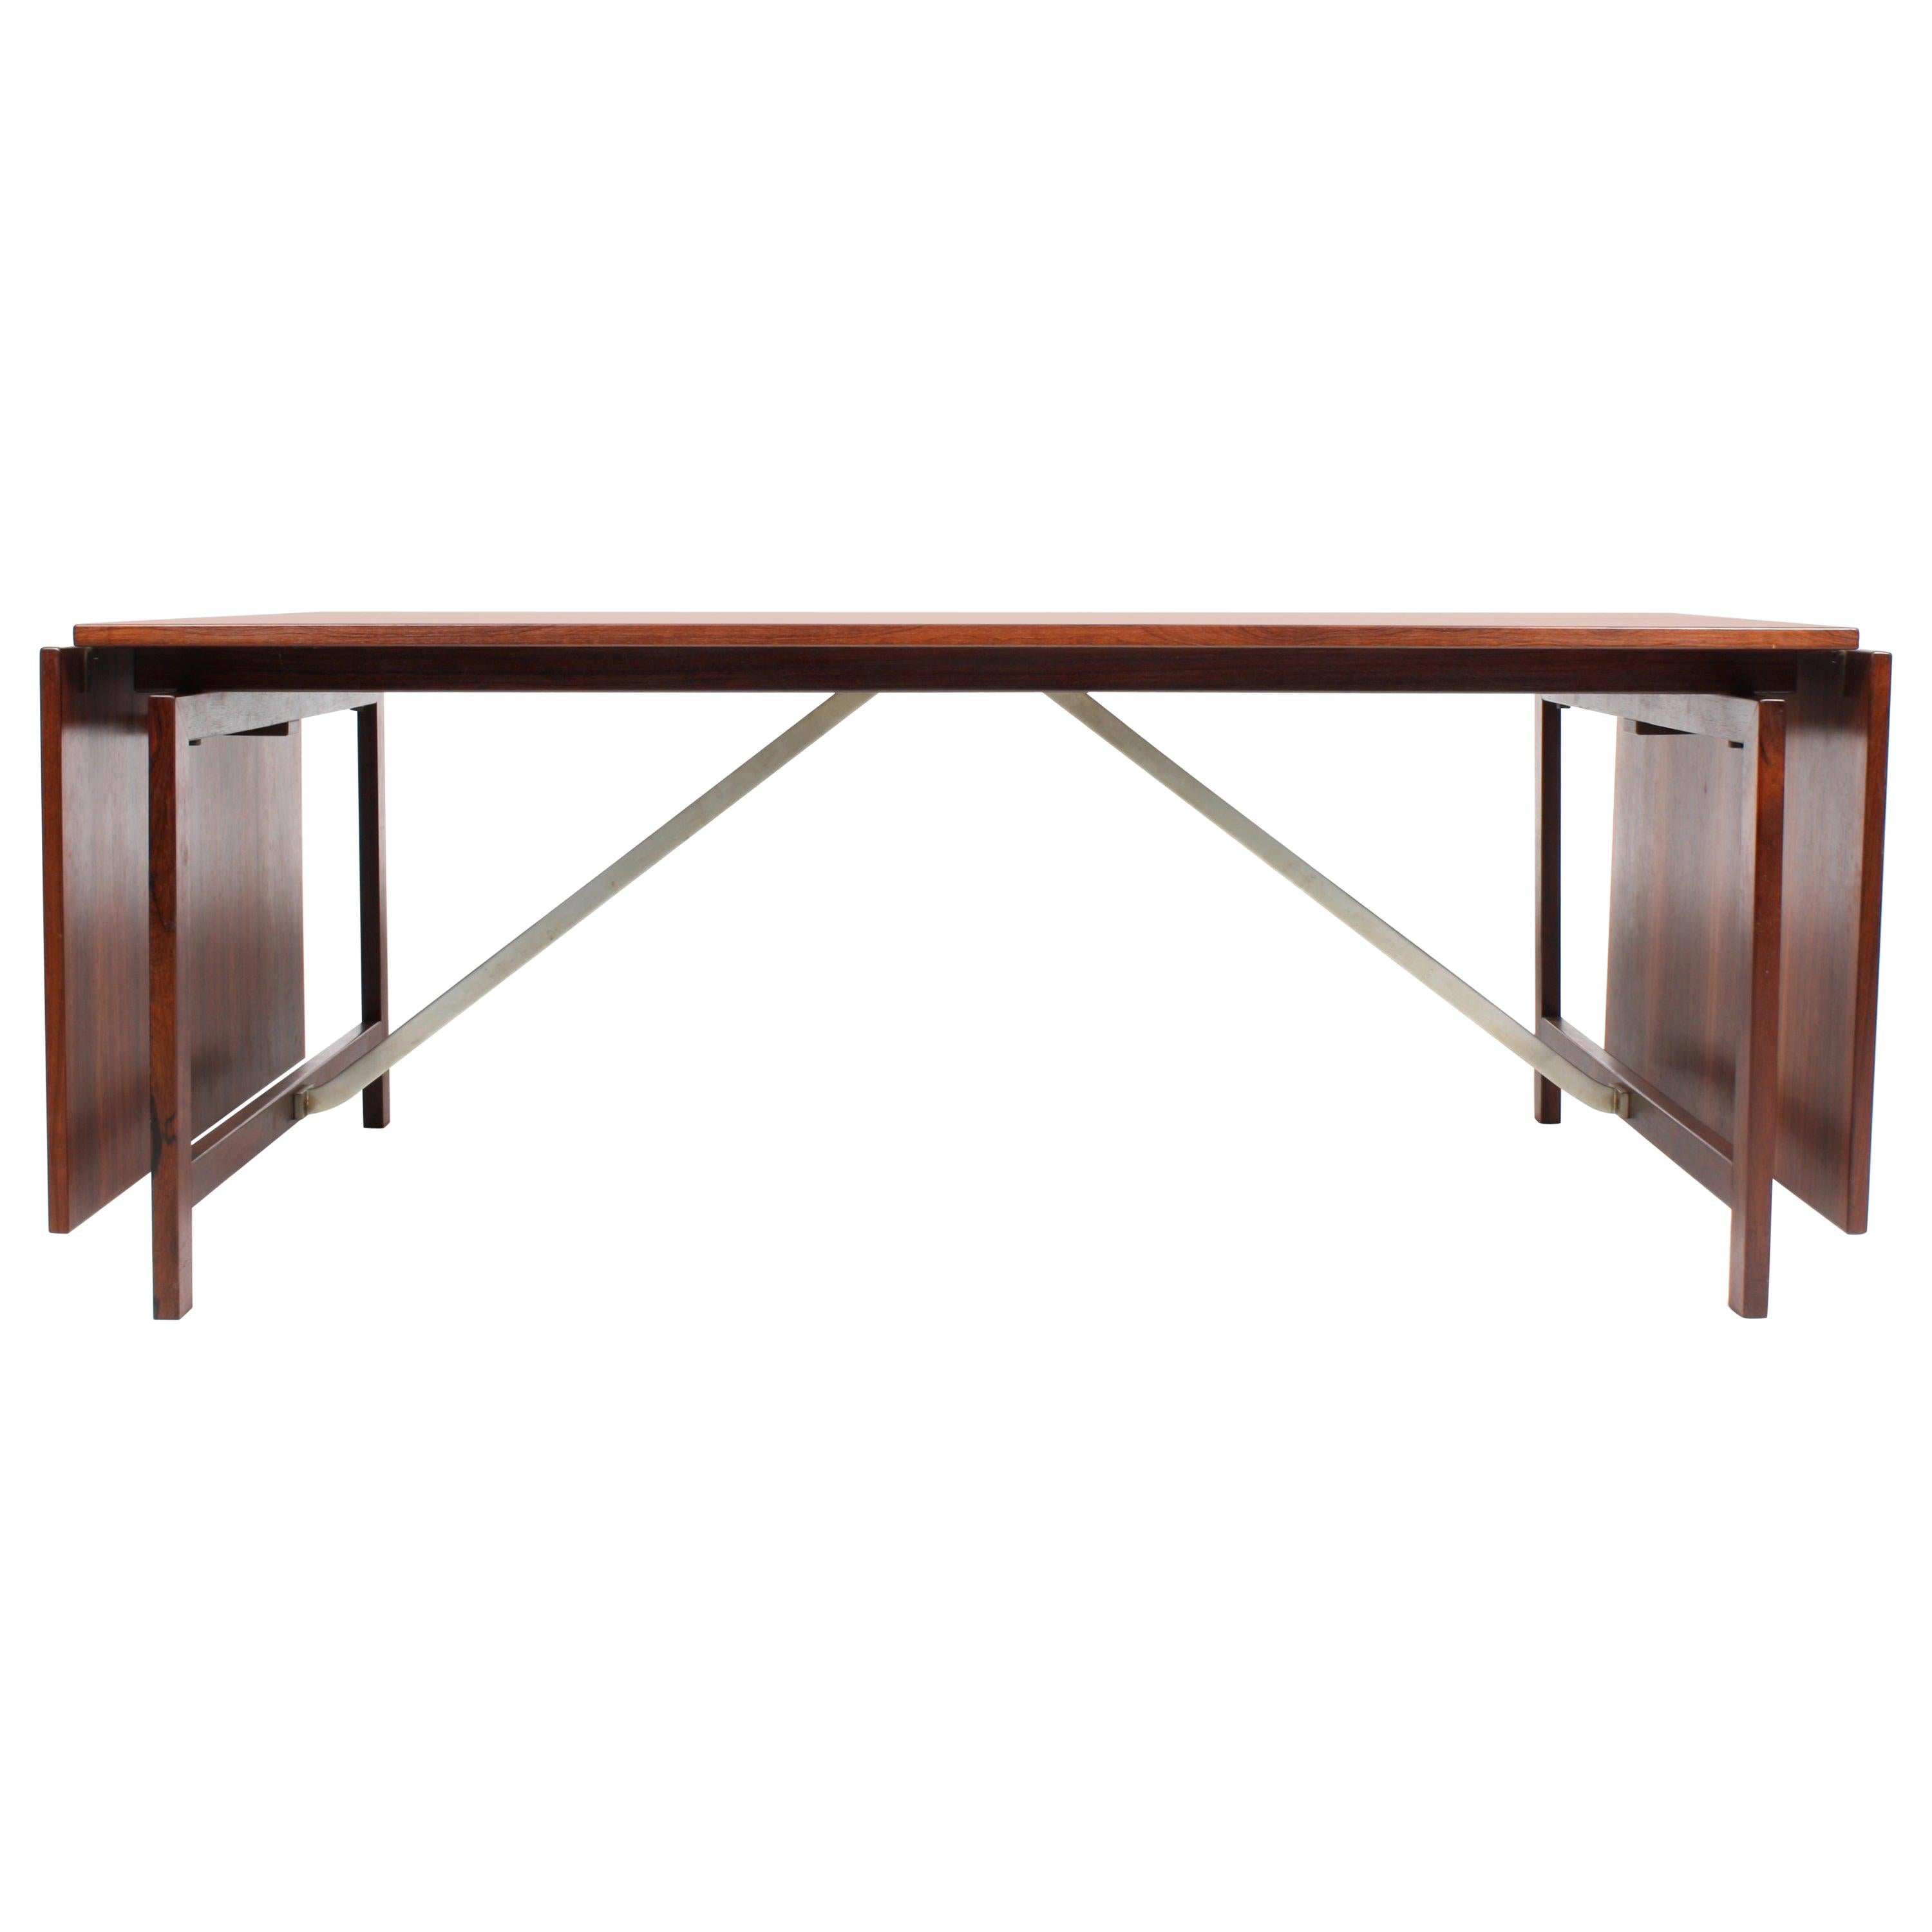 Large Midcentury Drop-Leaf Table in Rosewood, 1950s